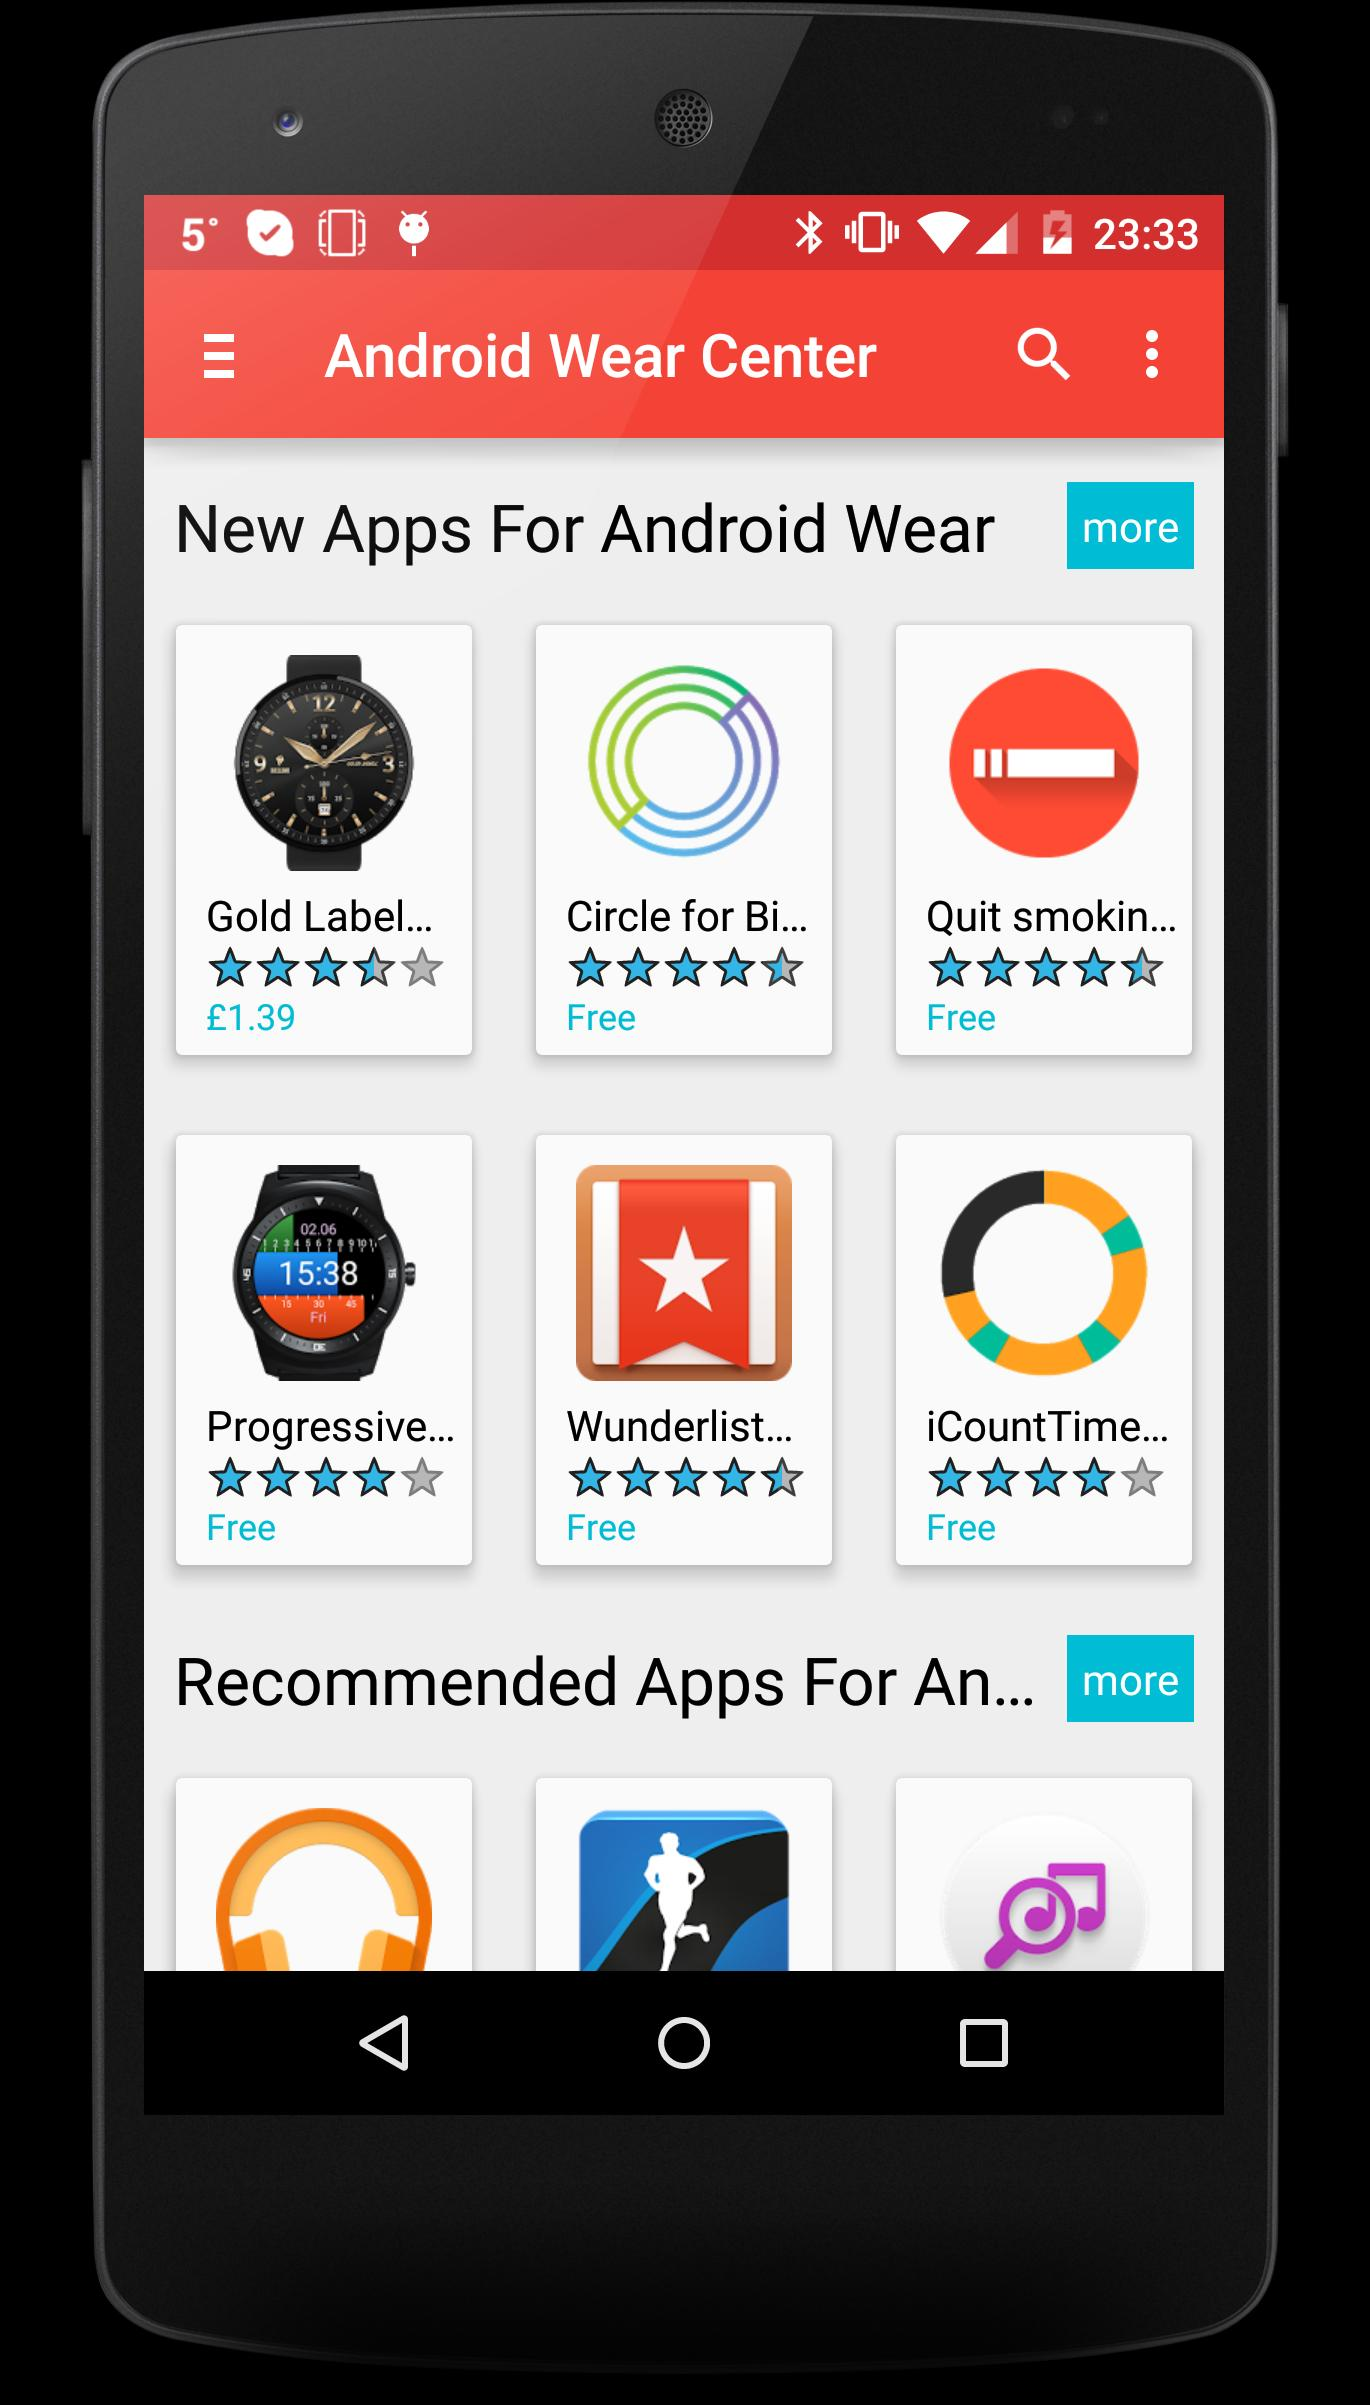 Wear OS Center - Android Wear Apps, Games & News for Android